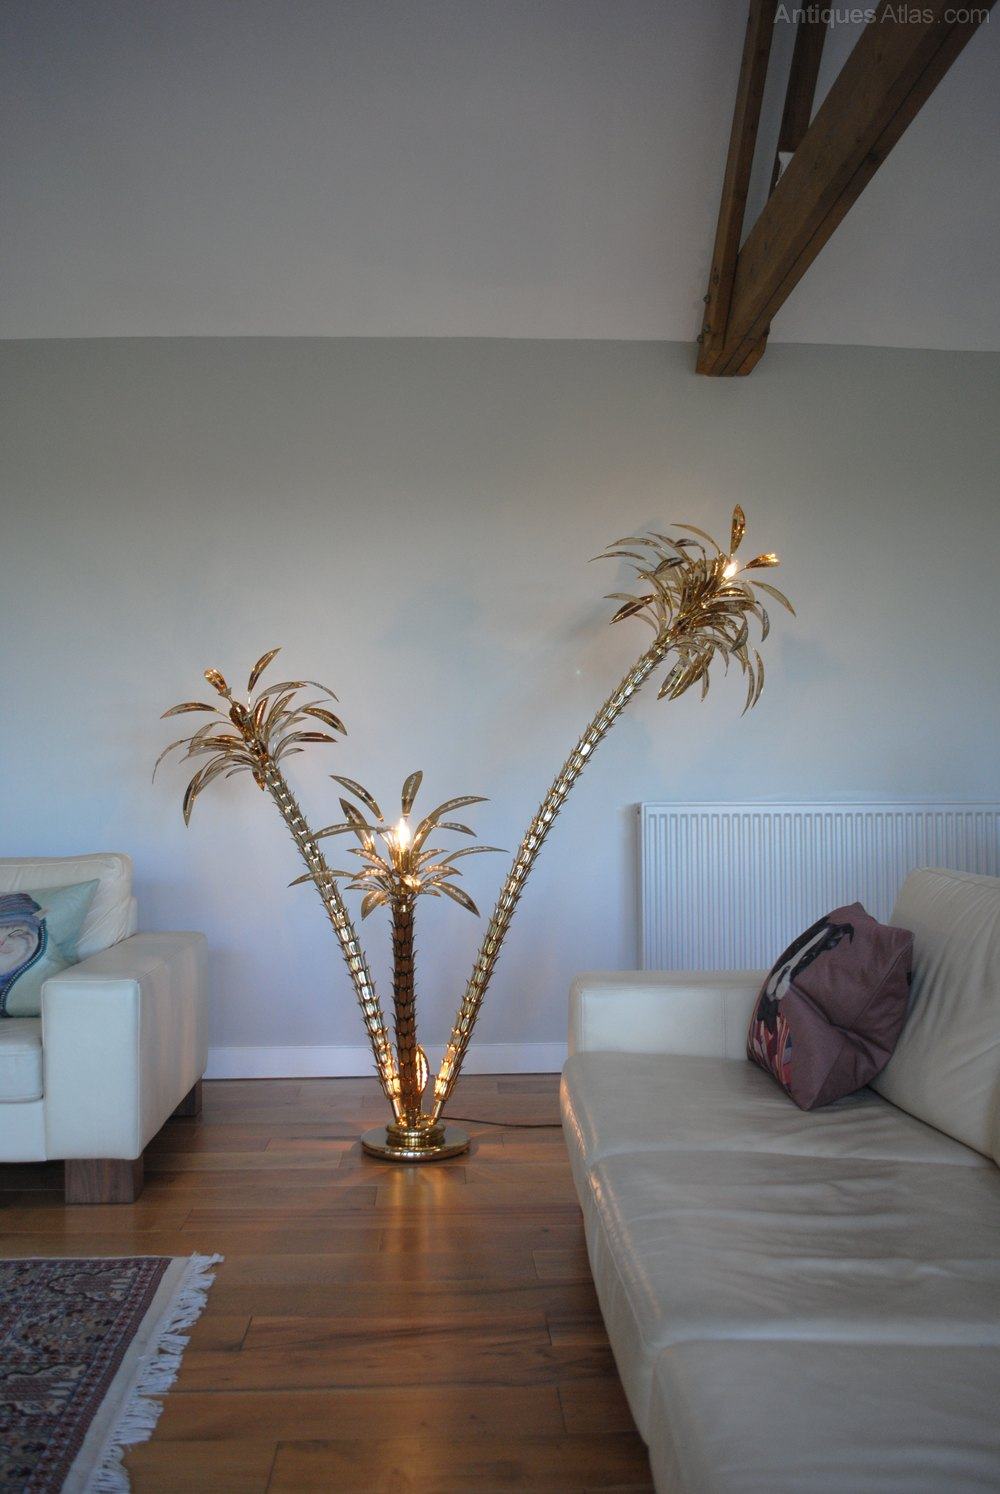 Vintage Italian Brass Palm Tree